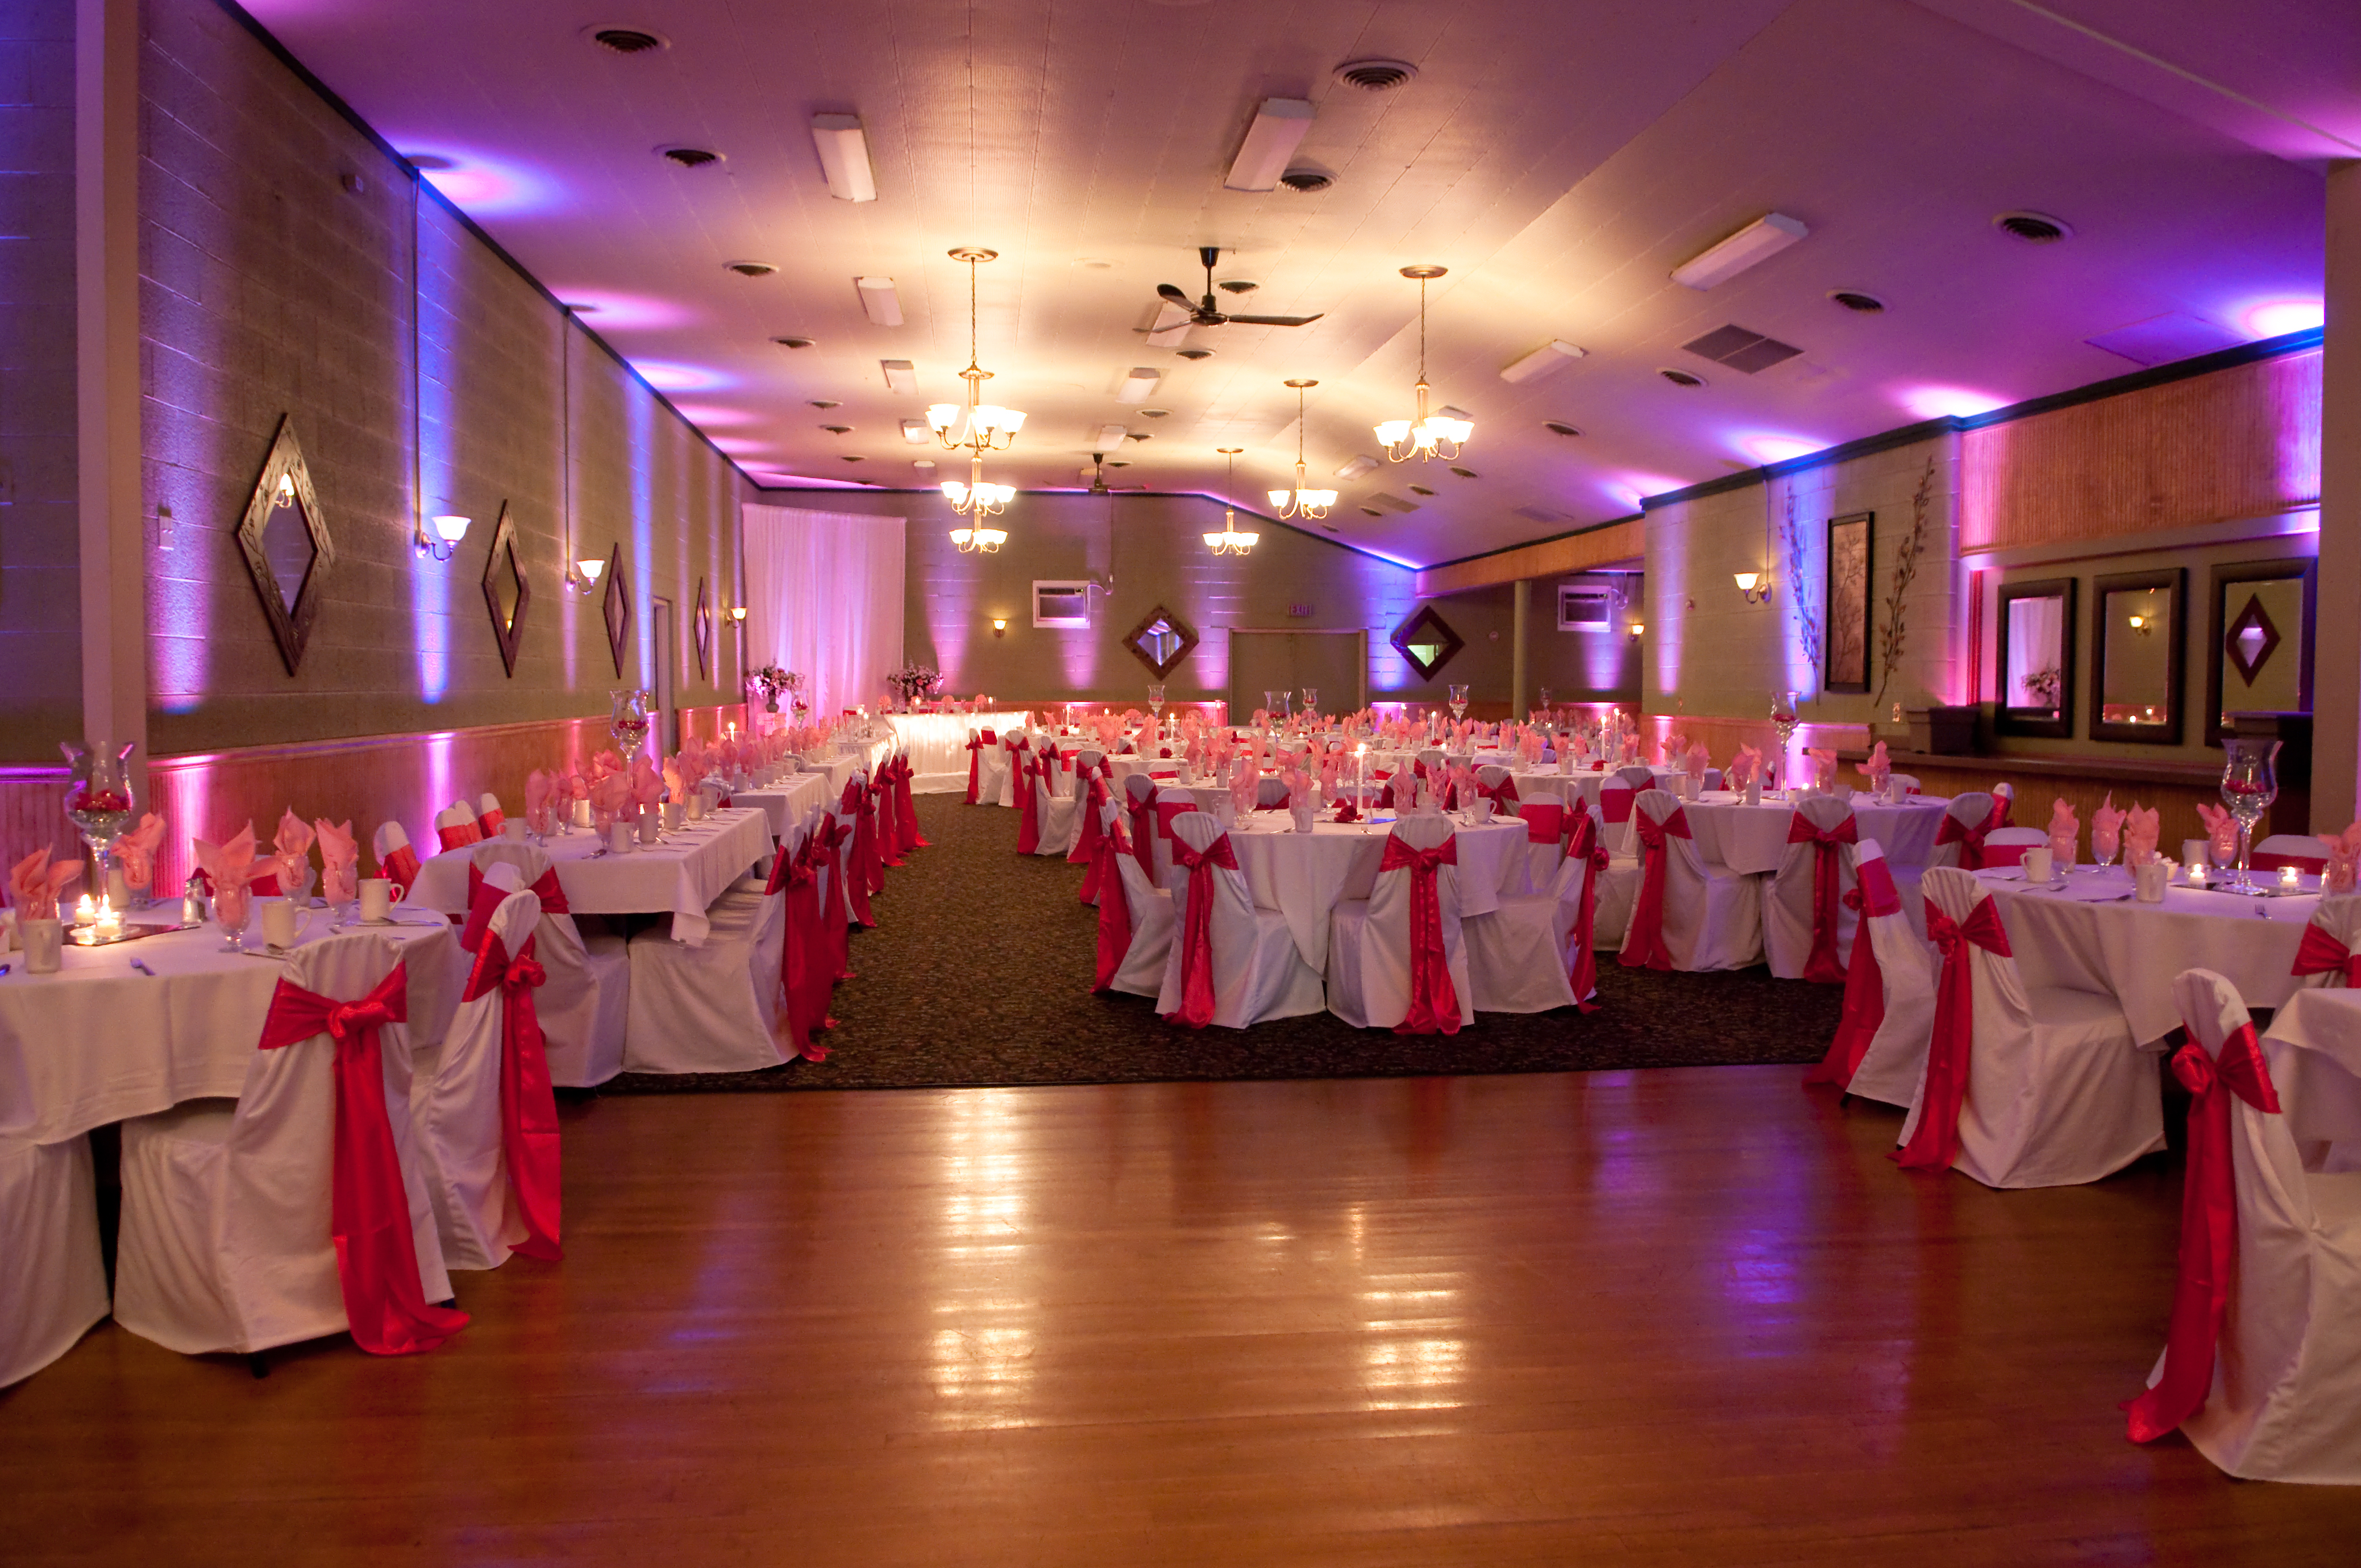 All About Banquet Hall Companies With Image Hoereoe Storify